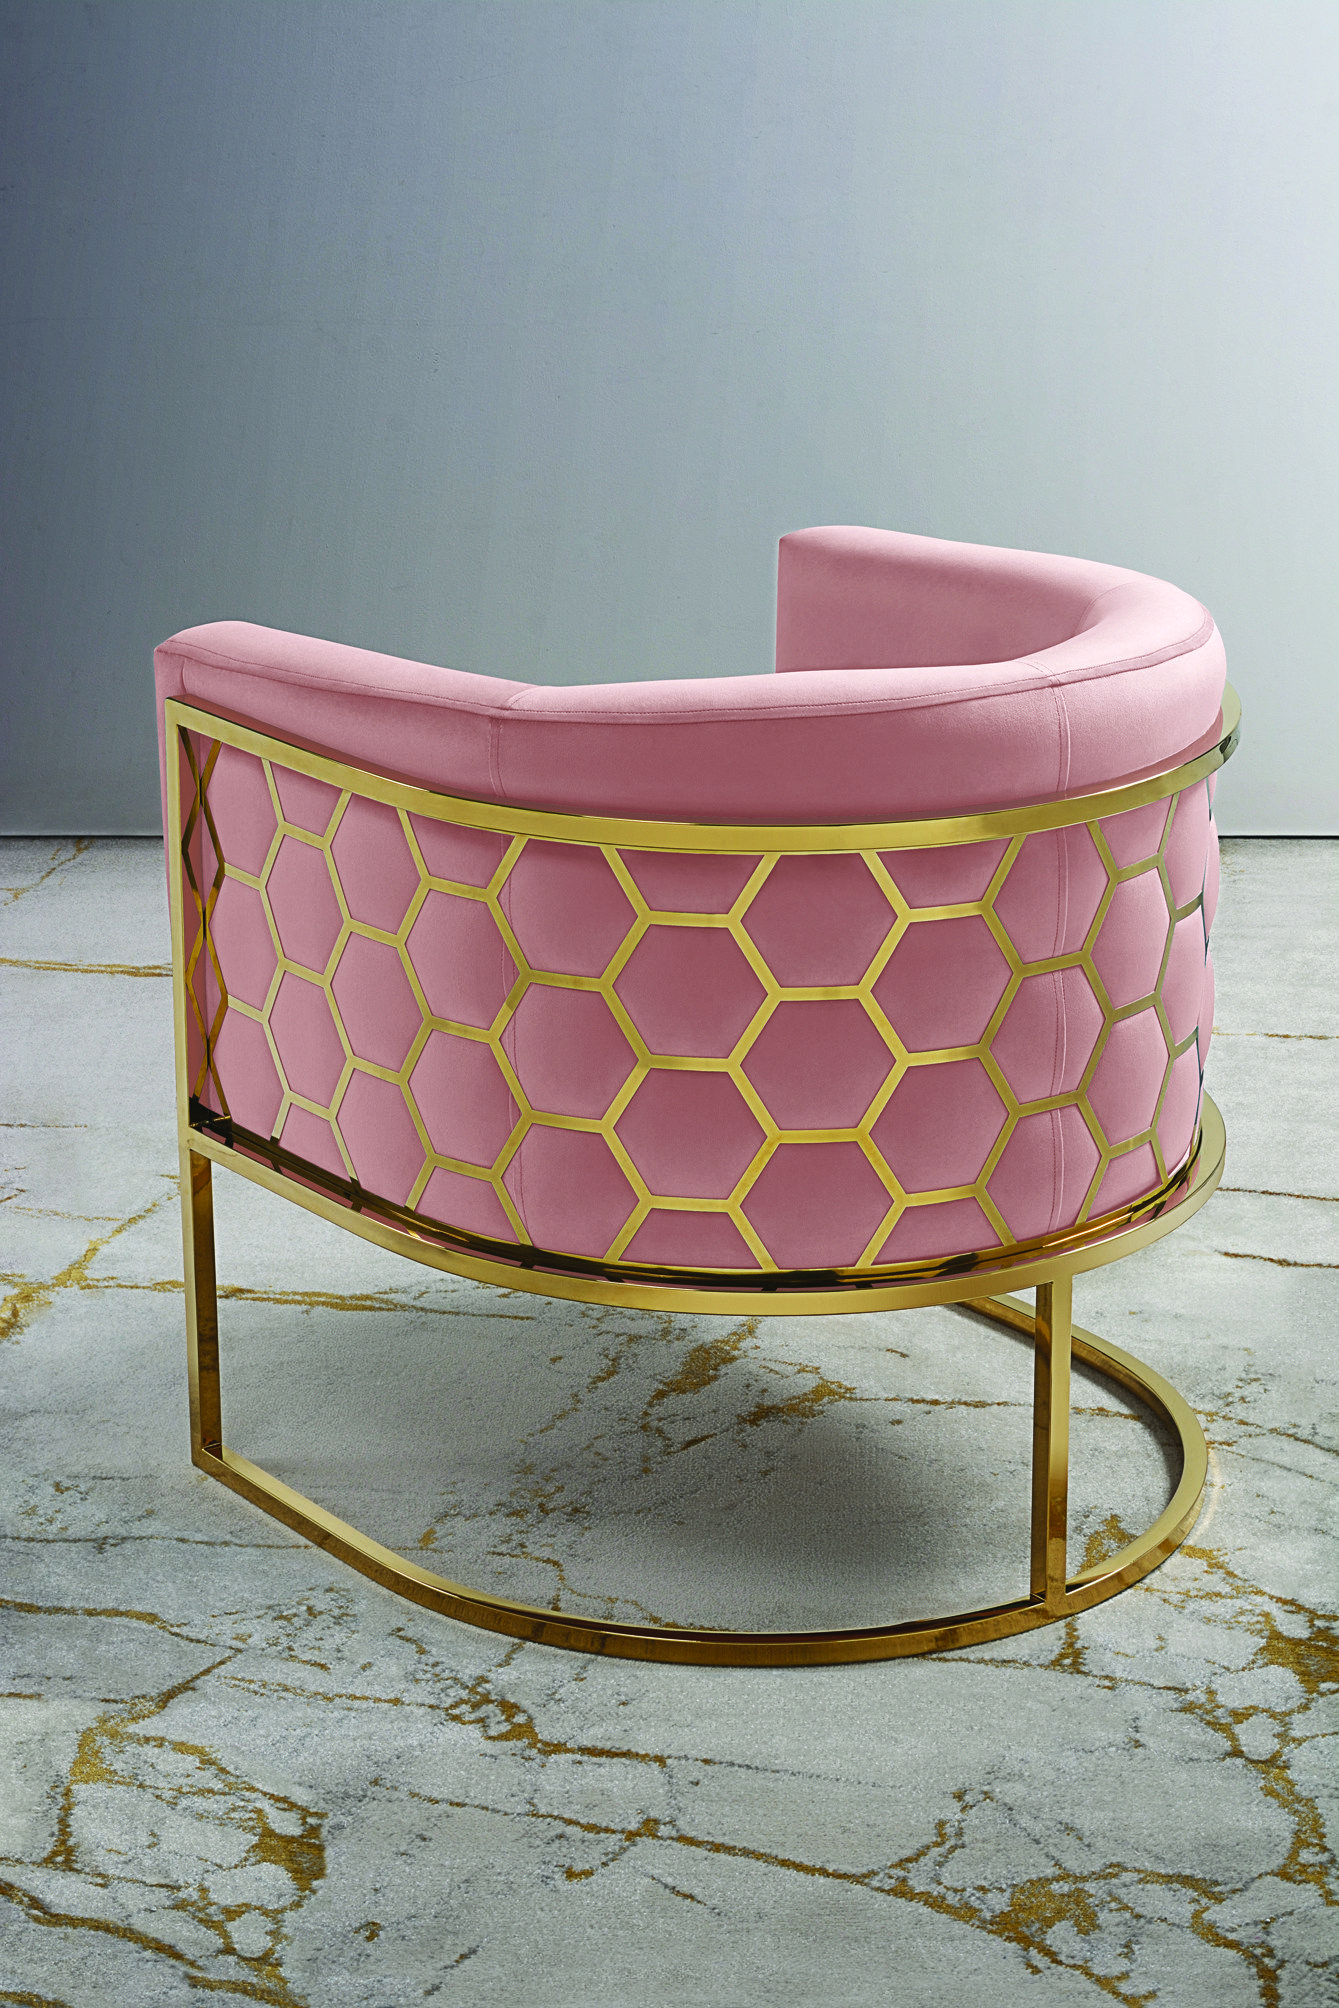 12 Reasons To Love The Ongoing Geometric Trend is part of Rose gold furniture - There's something rather wonderful about introducing geometric pattern to our homes with its interlocking tessellating shapes  A sense of harmony and rhythm is achieved whilst being visually stimulating  And like the floral trend, geometric patterns have never really gone out of fashion  From the